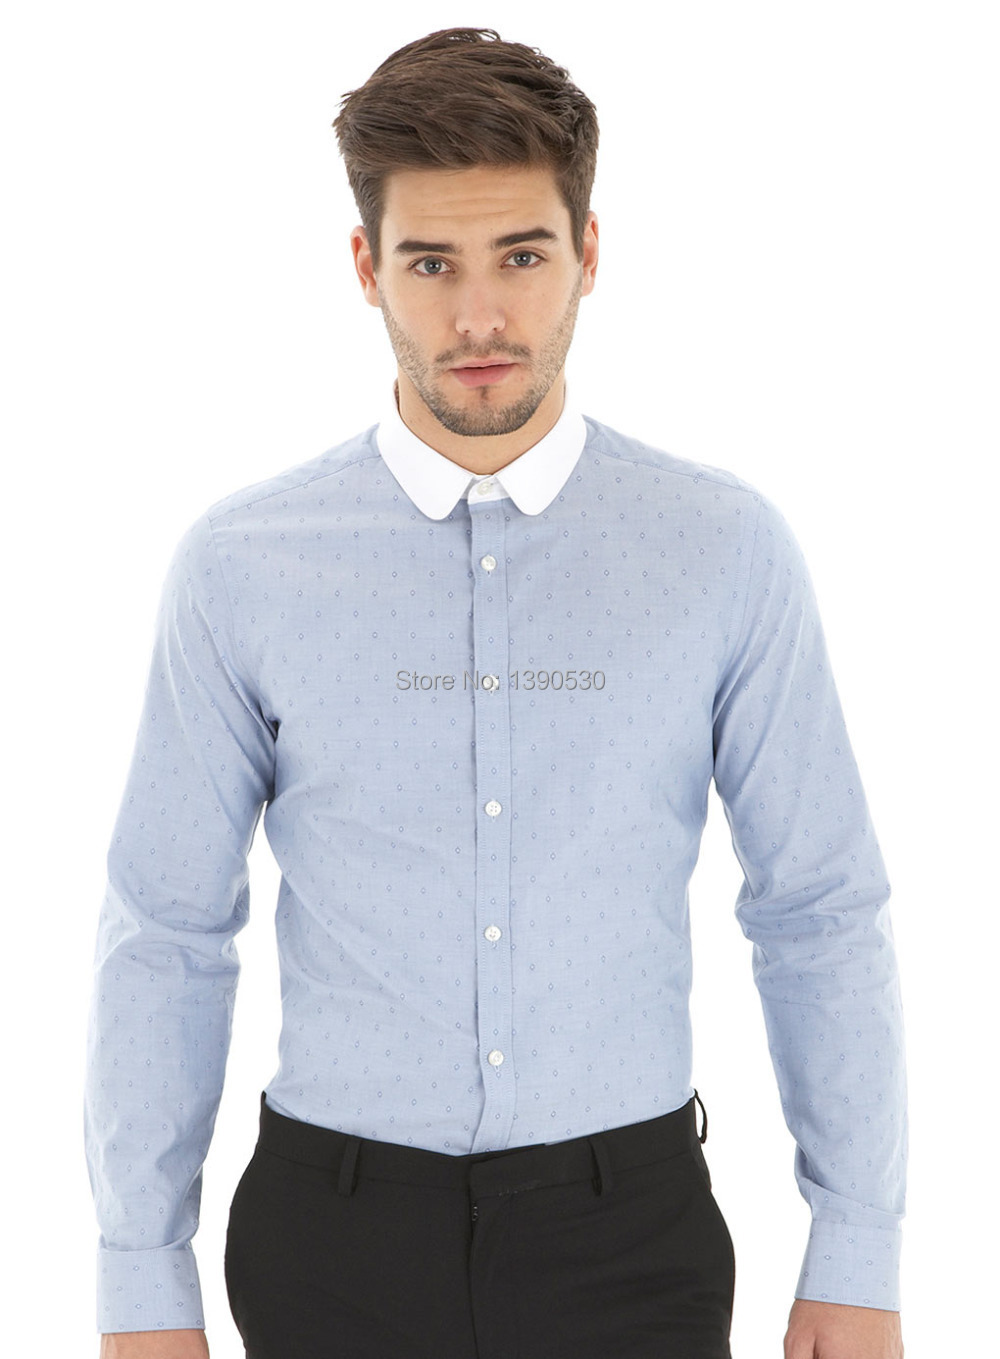 Popular White Round Collar Shirt for Men-Buy Cheap White Round ...